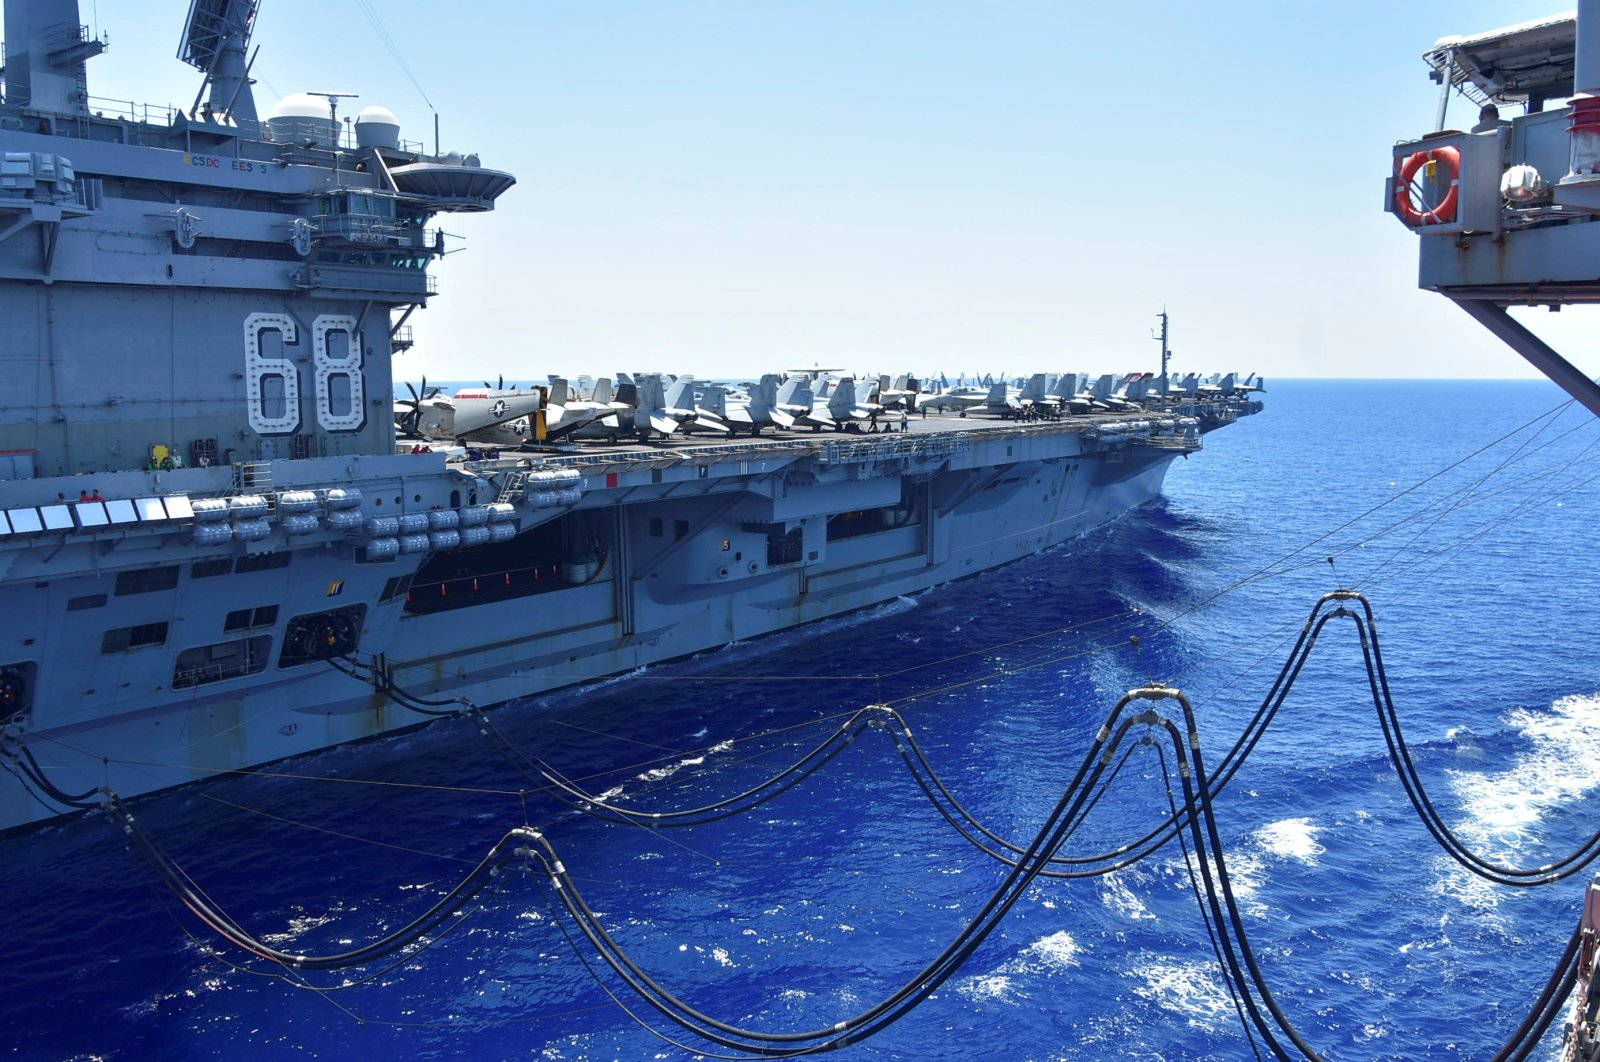 The U.S. Navy aircraft carrier USS Nimitz receives fuel from the Henry J. Kaiser-class fleet replenishment oiler USNS Tippecanoe during an underway replenishment in the South China Sea, July 7, 2020. (Reuters Photo)